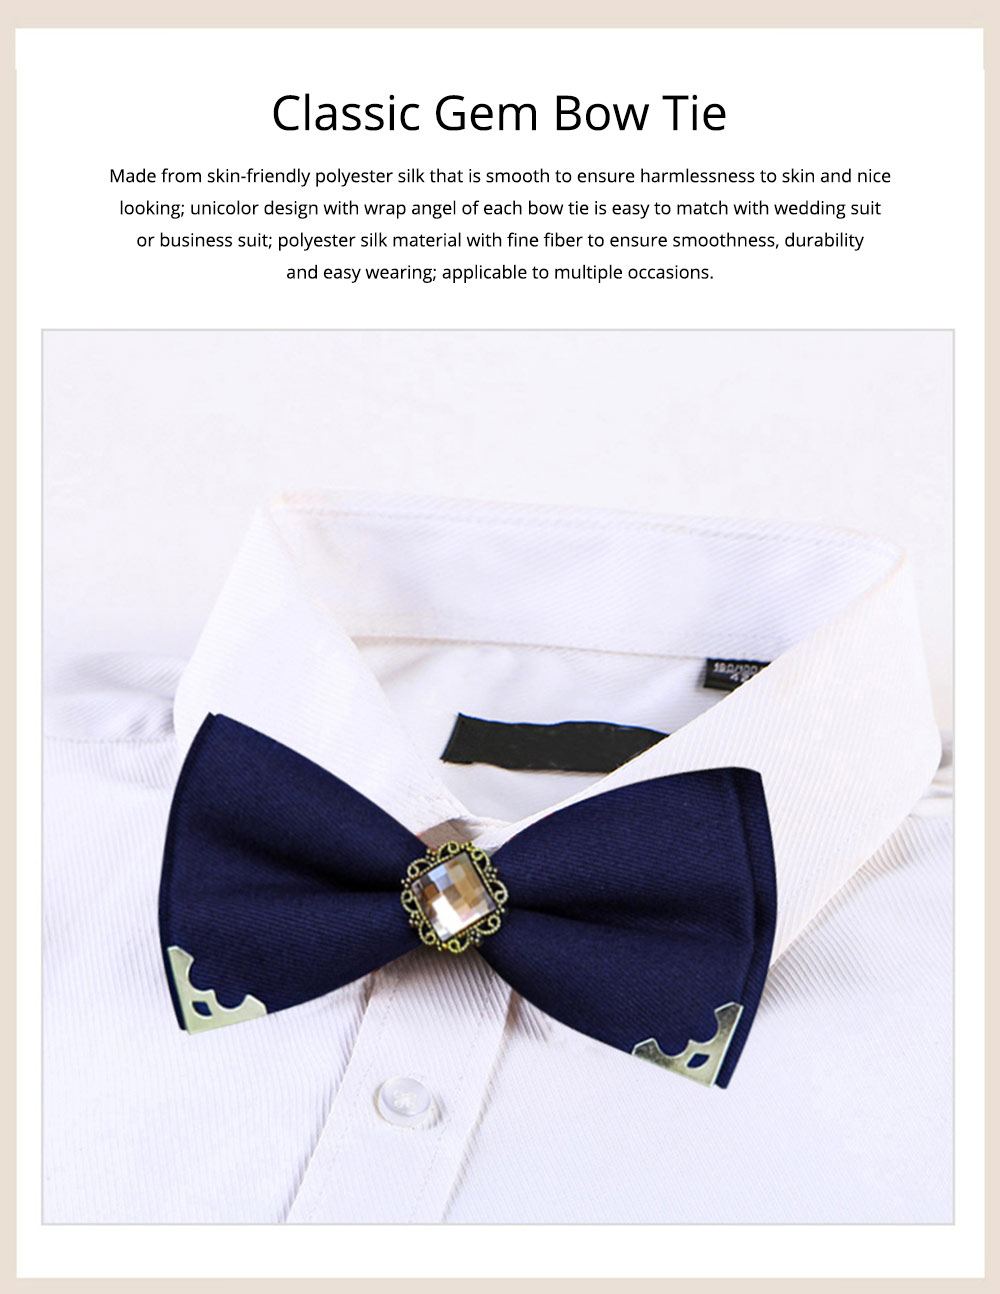 Korean Style Bow Tie for Male Fashionable Man-used Wrap Angle Bow Tie for Bridegroom Groomsman Classic Gem Bow Tie 0